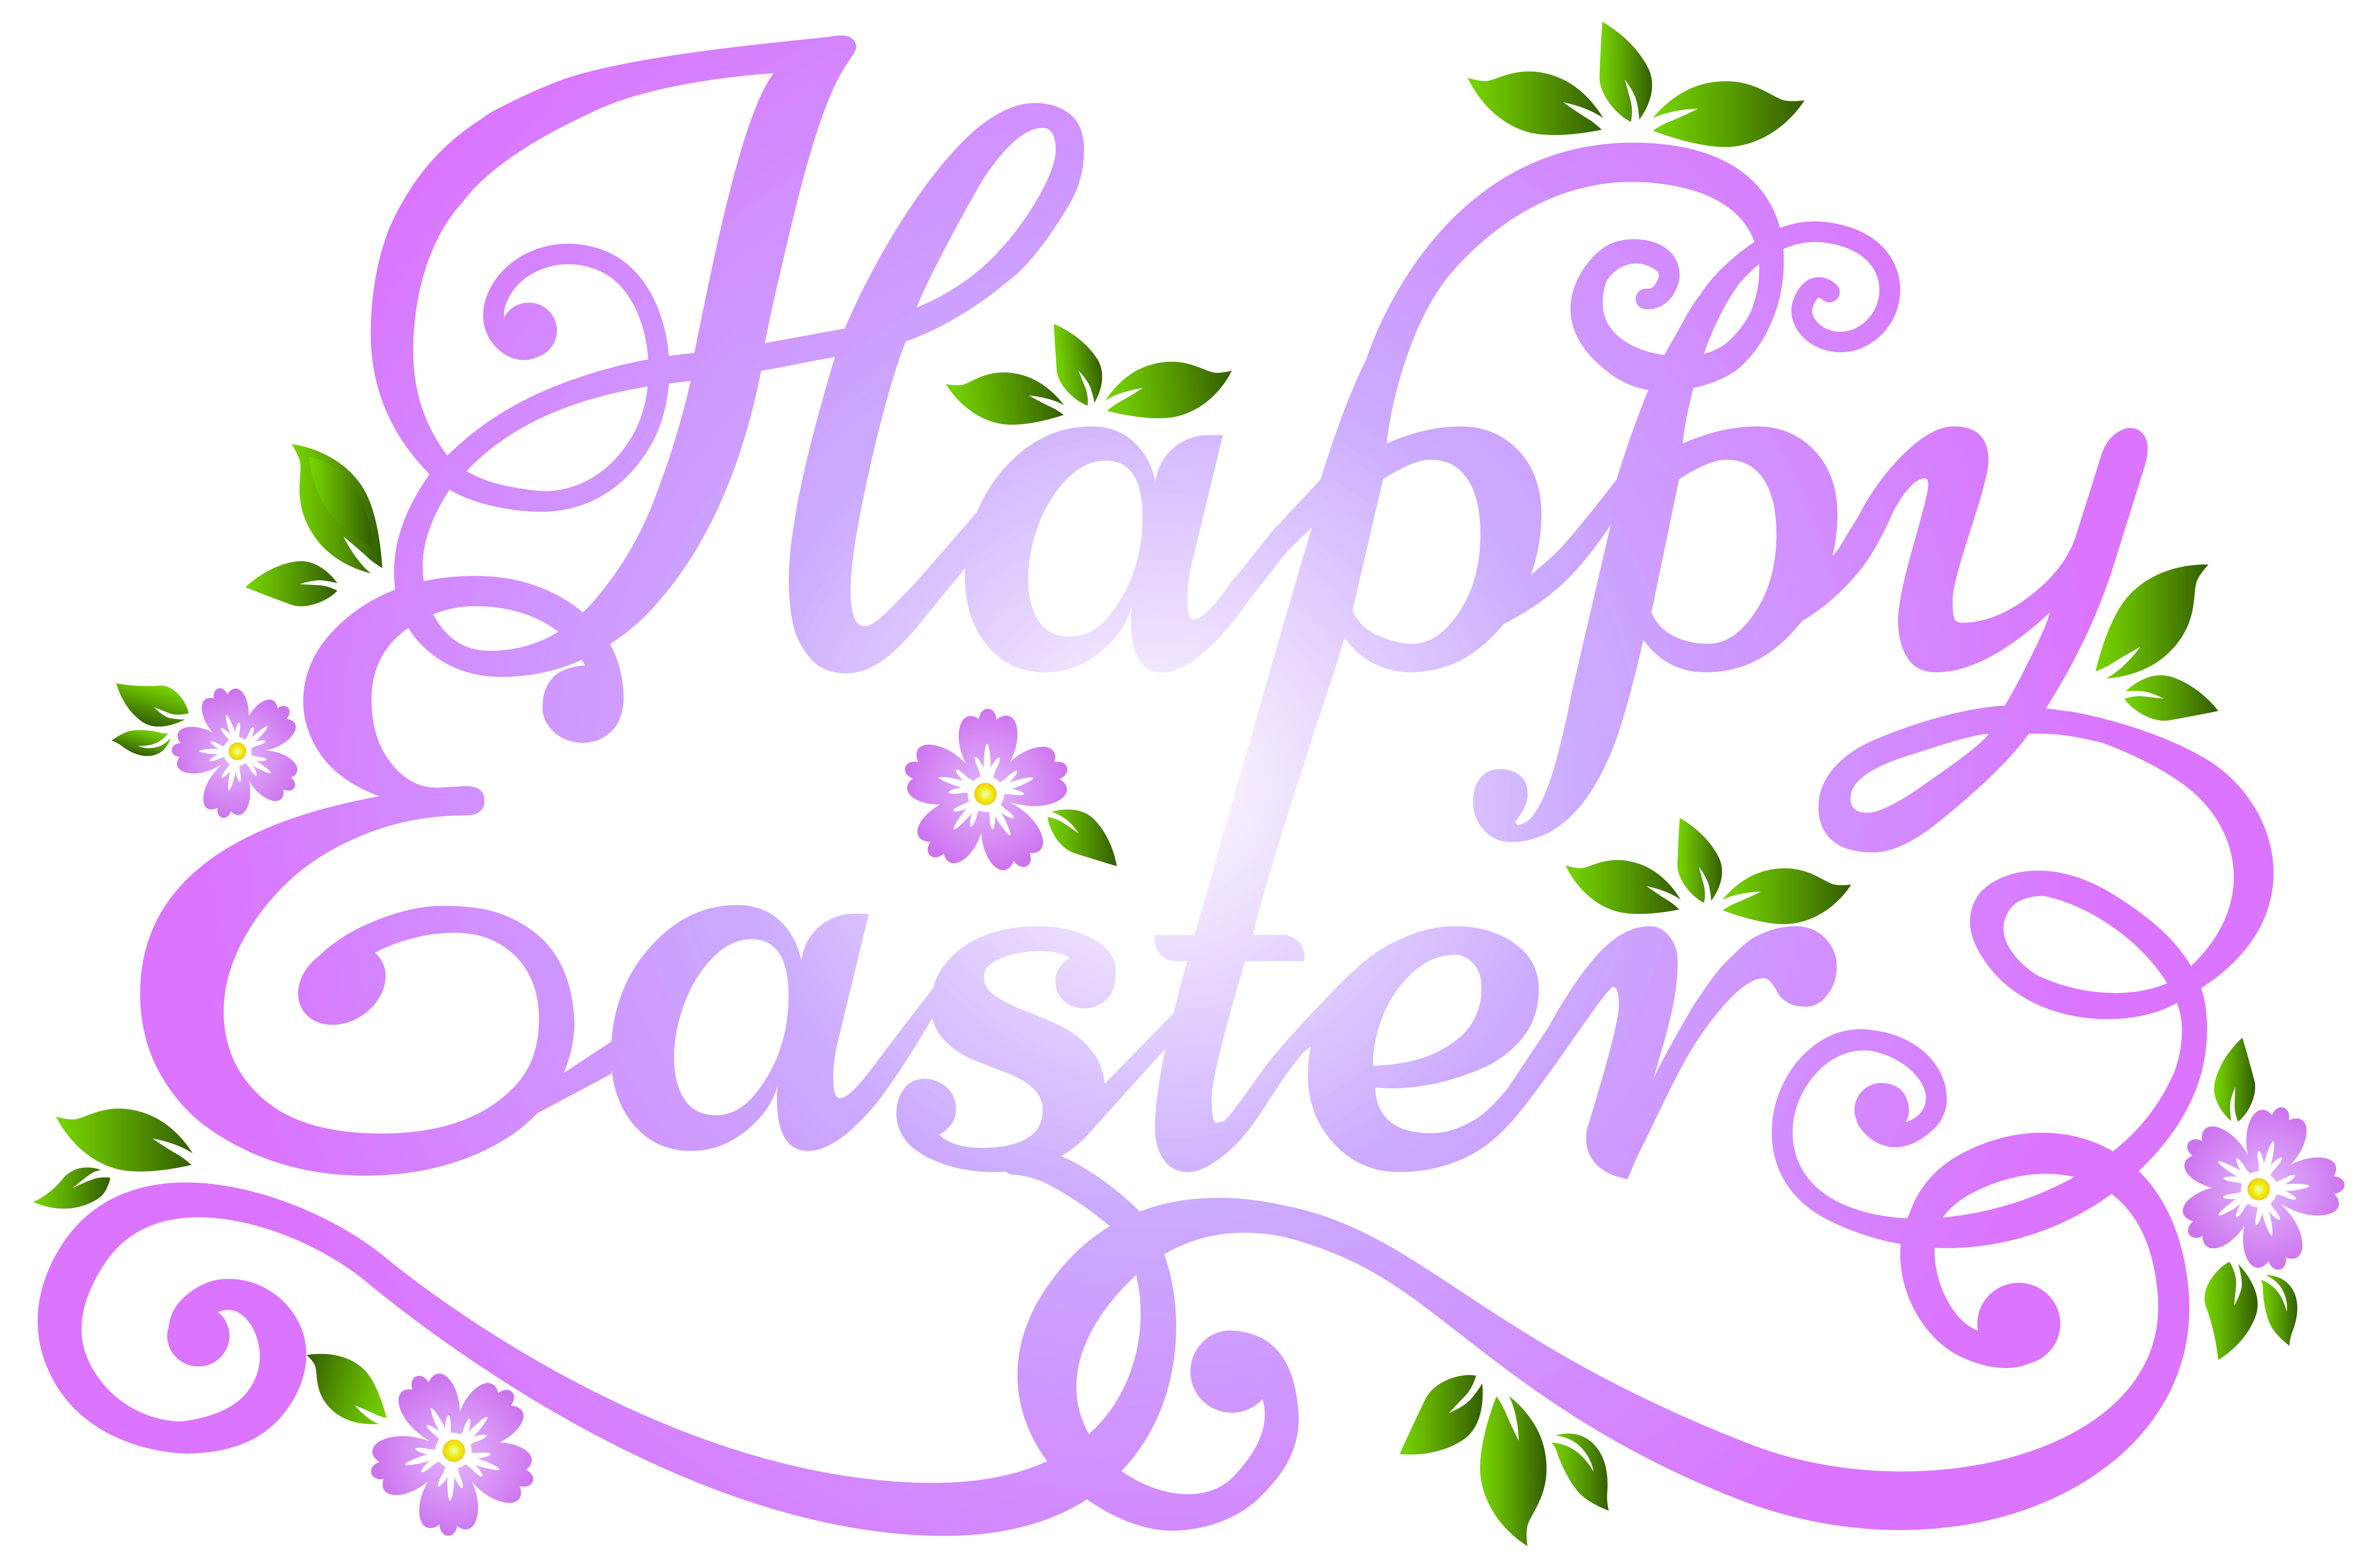 Religious happy easter clipart clipart images gallery for free.